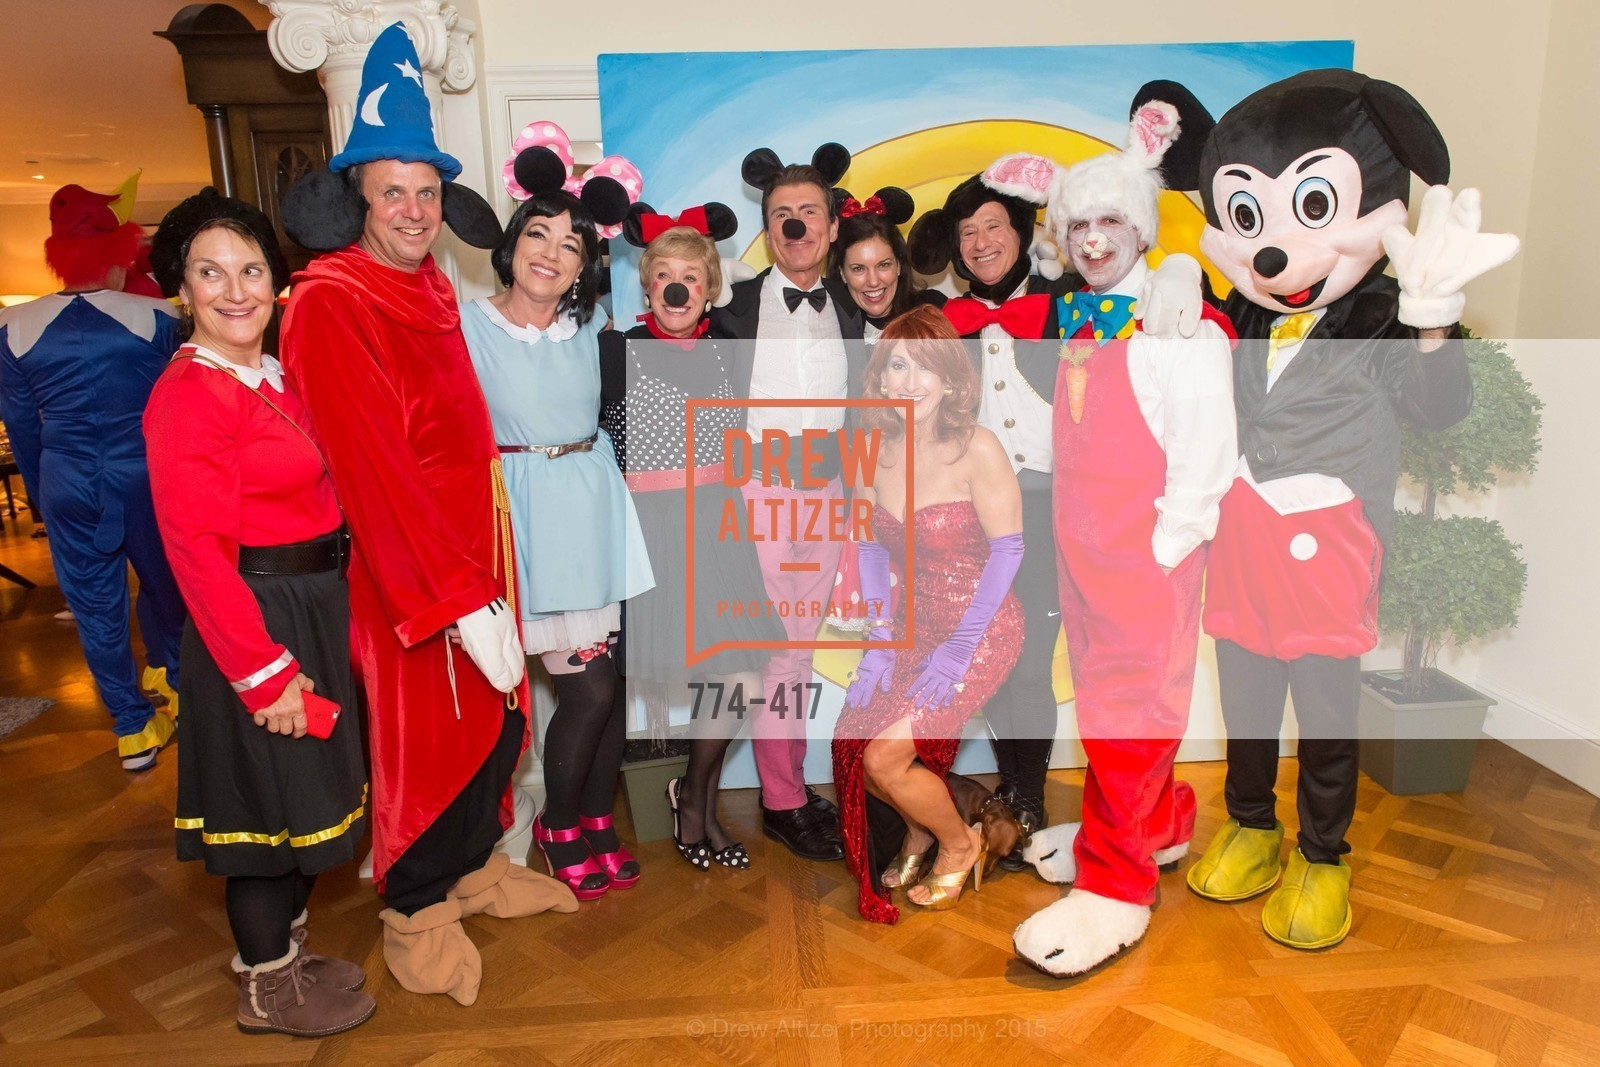 Debby Sagues, Steve Maniscalco, Brenda Wissbrod, Maria Pitcairn, Robert Beadle, Toni Wolfson, Bridget Fish, Howard Fish, Bob Federighi, Steve Kliener, Wolfson-Federighi Cartoon Costume Party, Private Residence. 737 Bay Road, October 24th, 2015,Drew Altizer, Drew Altizer Photography, full-service agency, private events, San Francisco photographer, photographer california